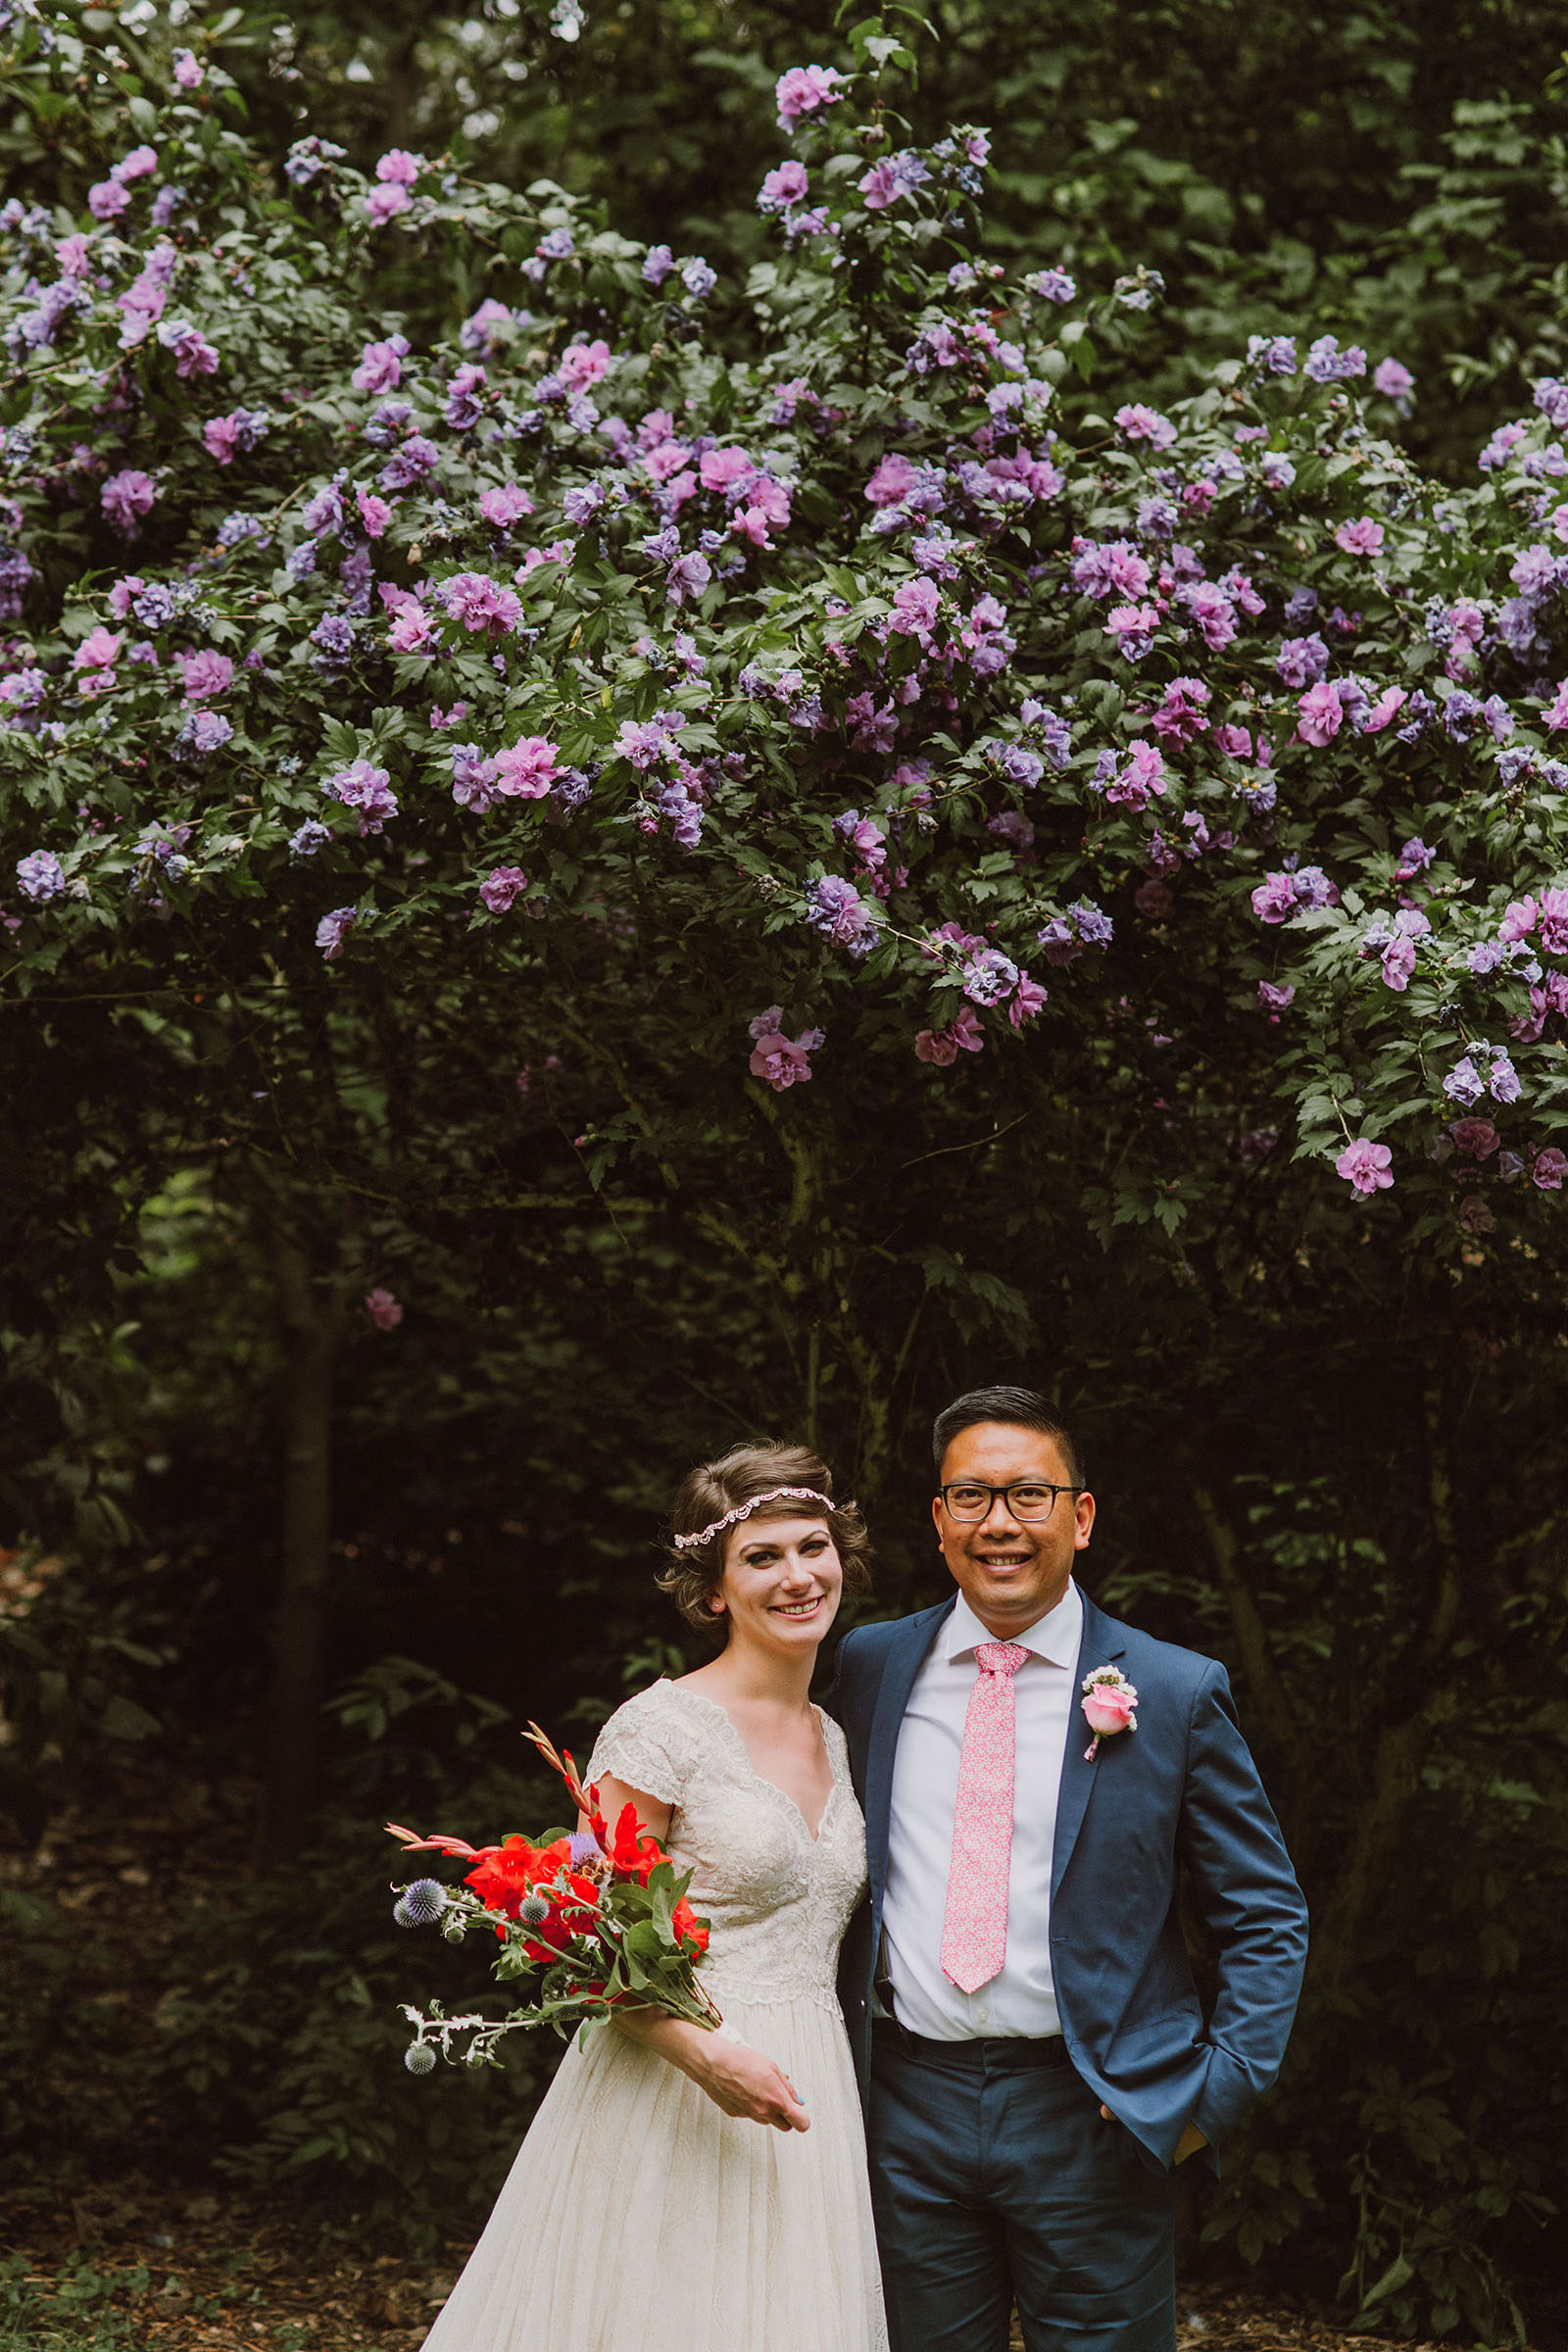 Bride and Groom portrait with blooming flowers in Laurelhurst Park | Downtown Portland Elopement